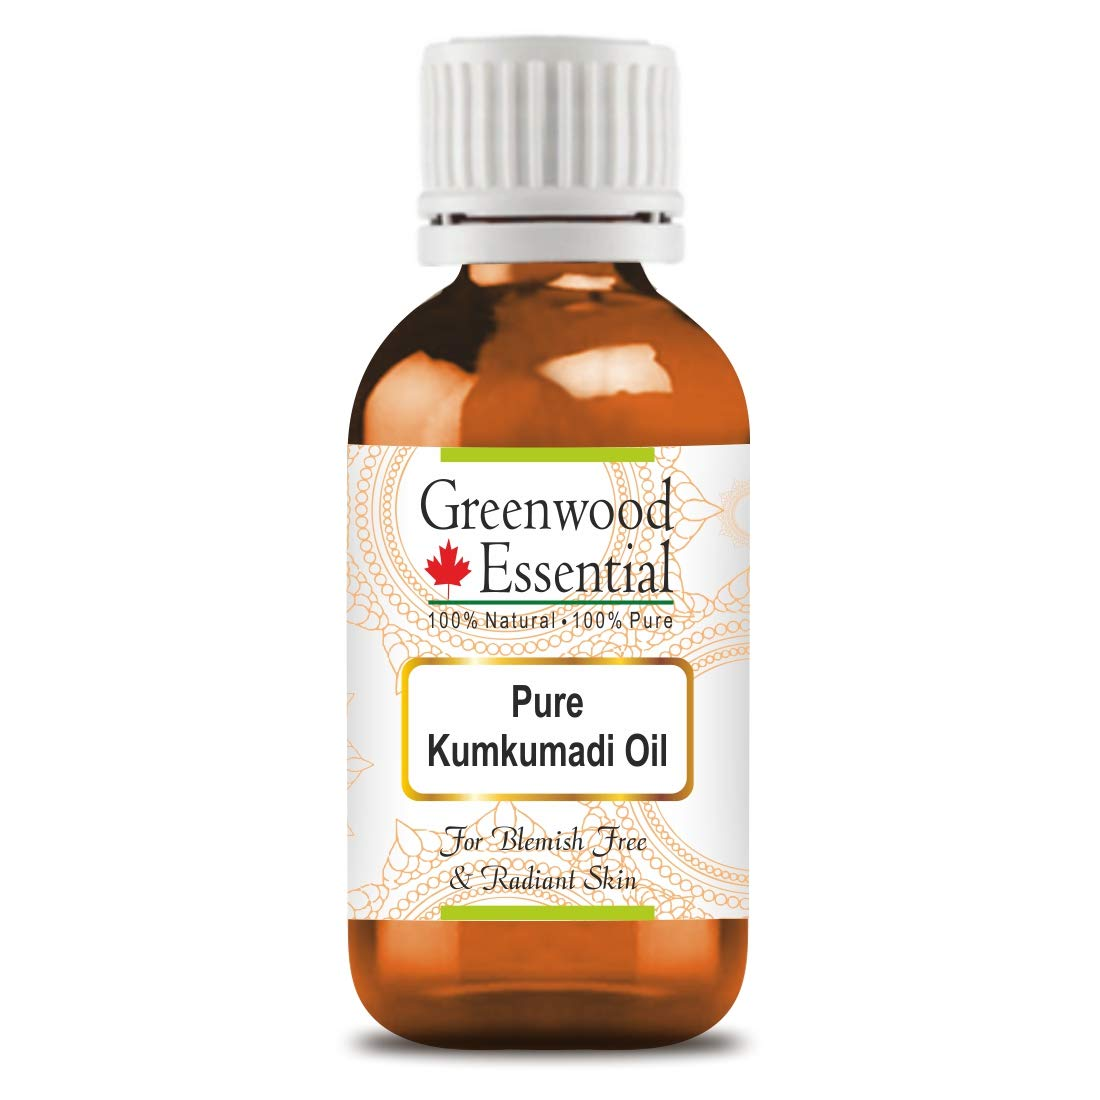 Greenwood Essential Pure Kumkumadi Oil For Blemishes Free and Radiant Skin 2 X 100ml (Pack of Two) (6.76 oz)